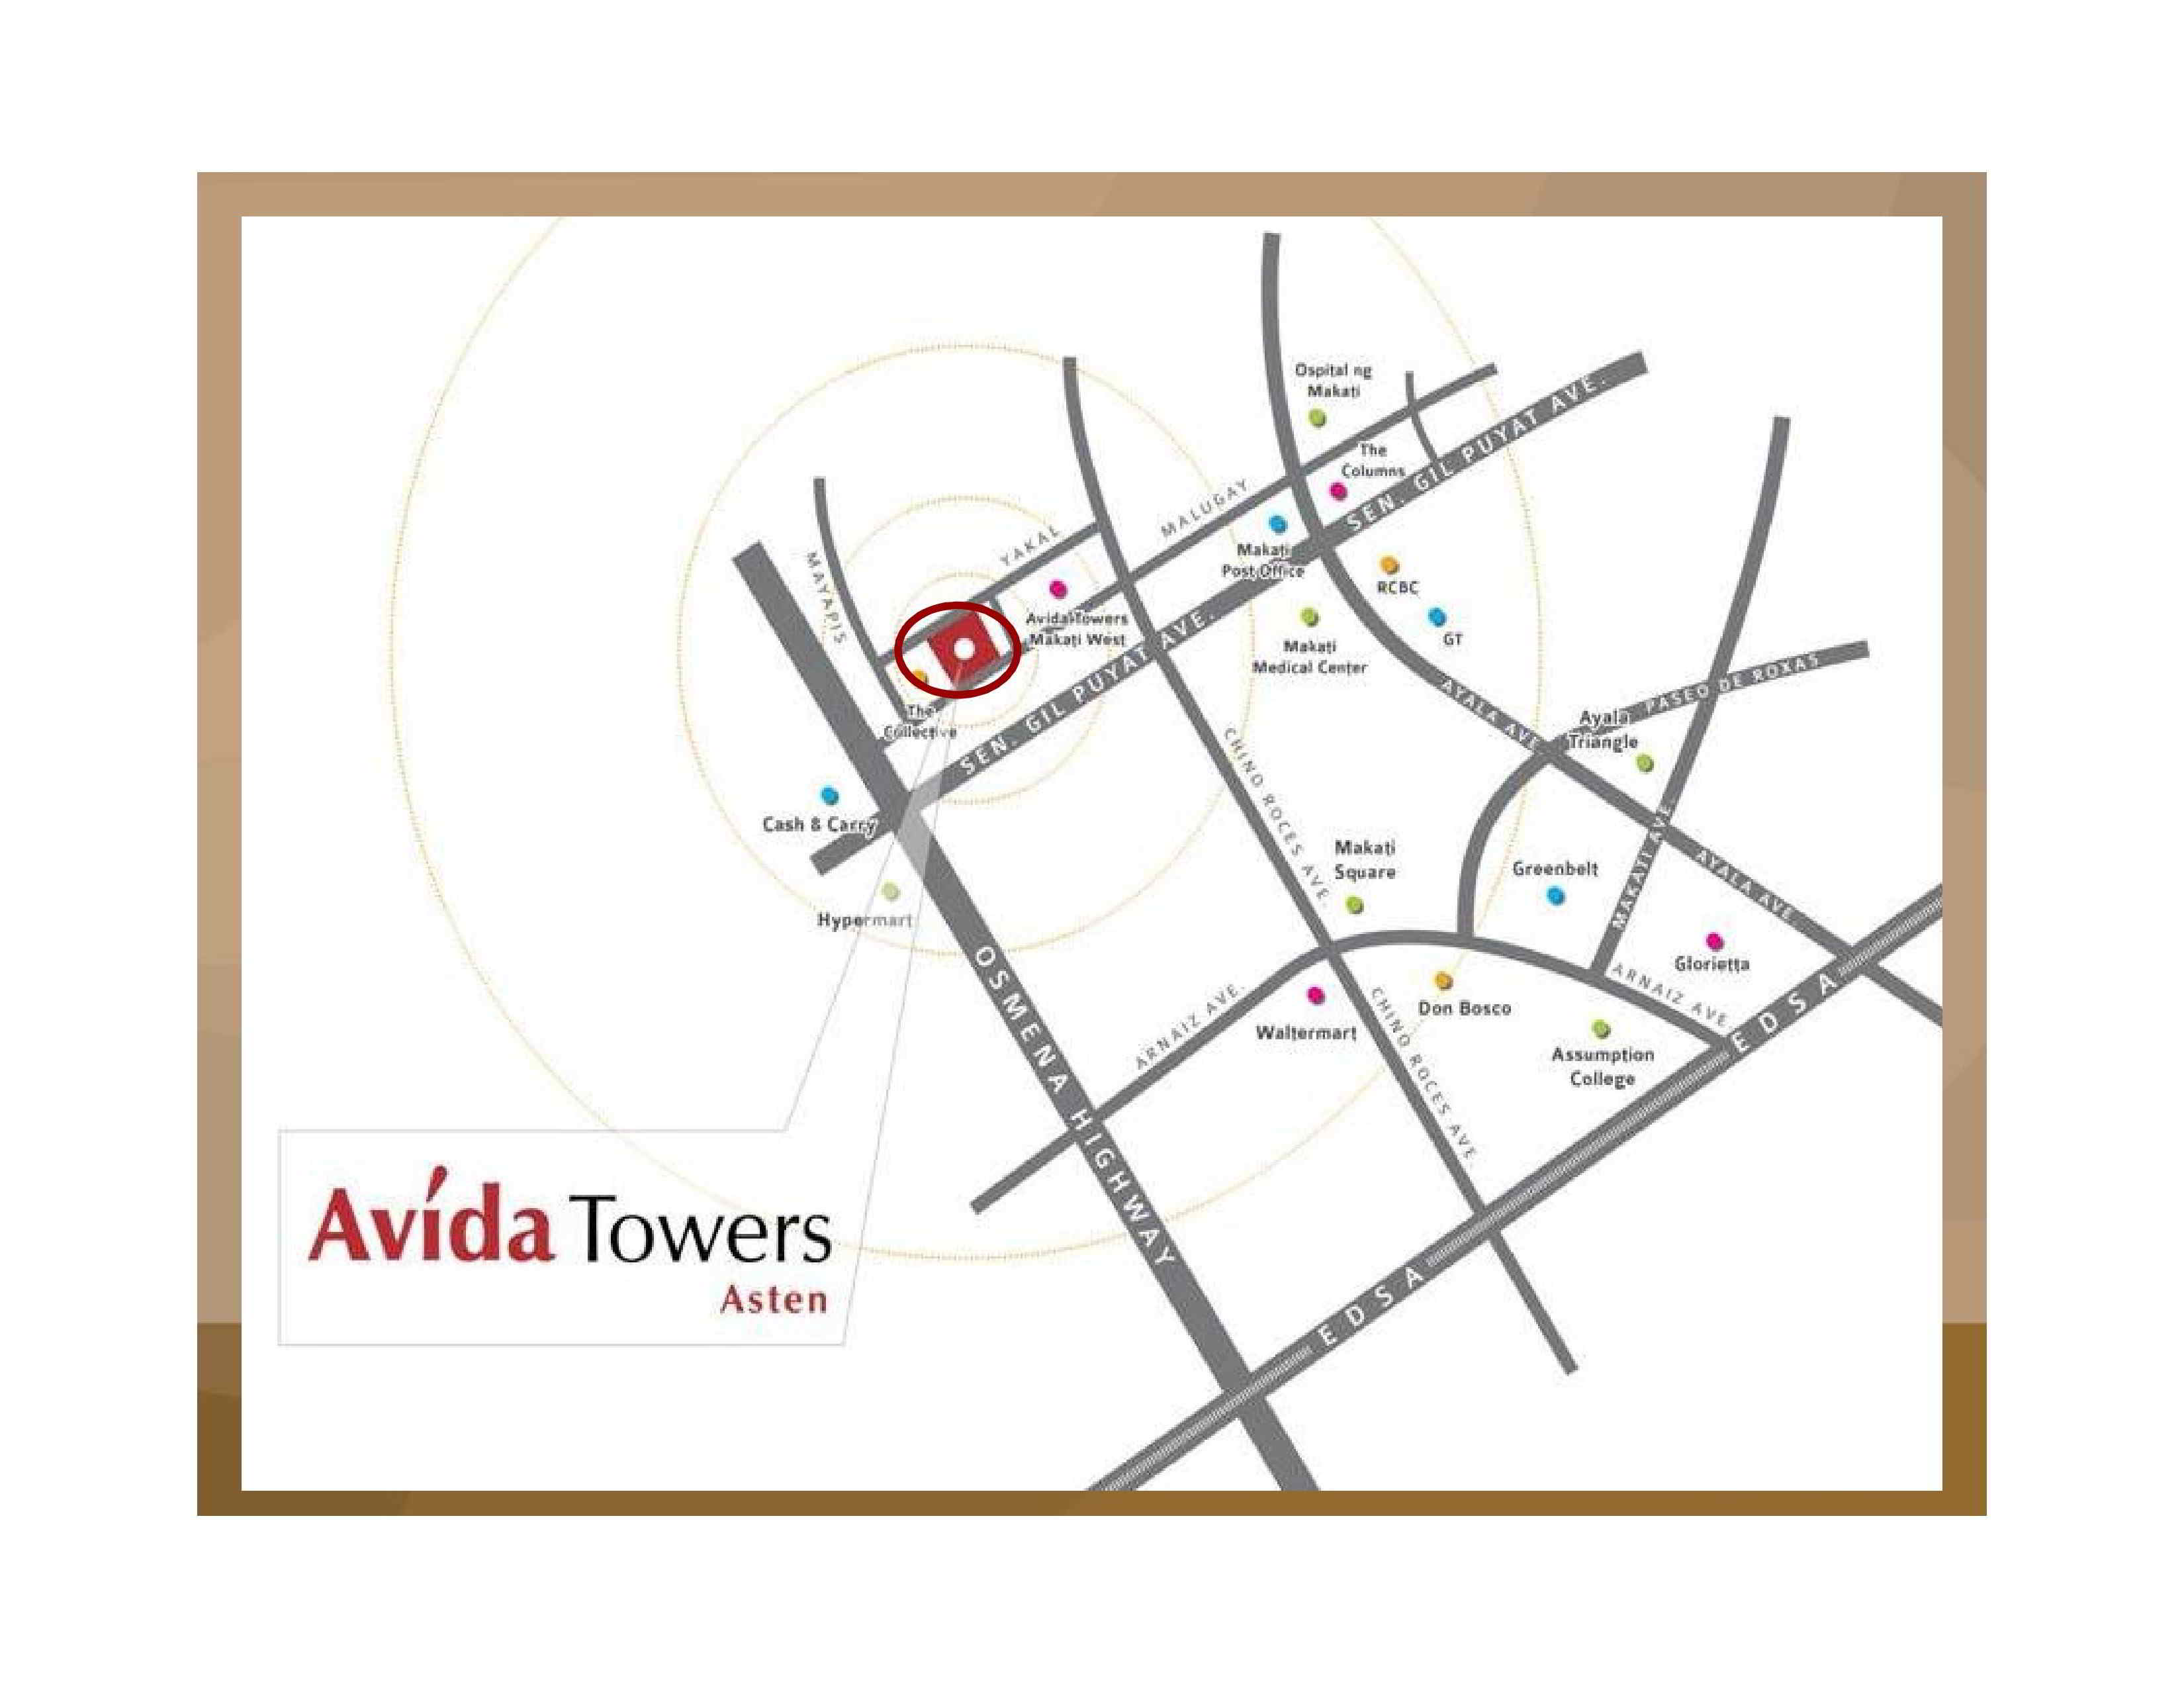 ASTEN TOWER AVIDA LOCATION